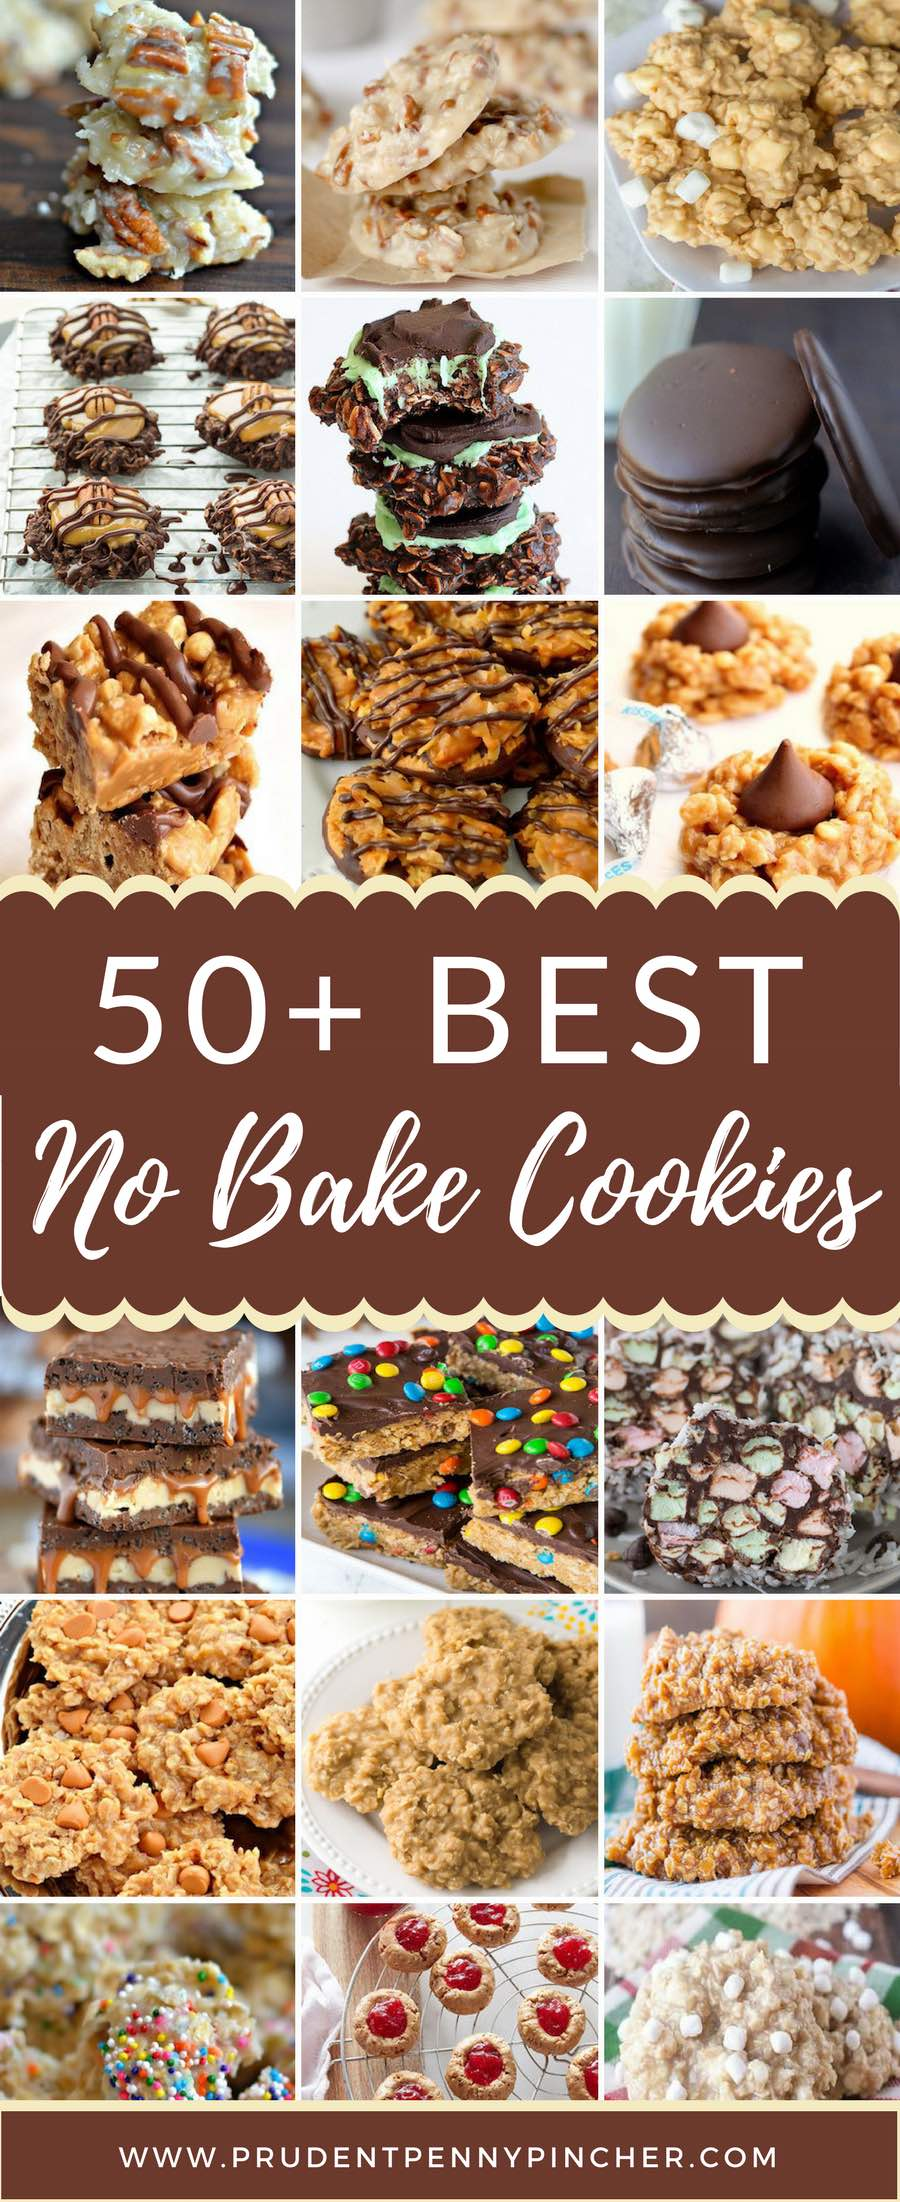 50 Best No Bake Cookies